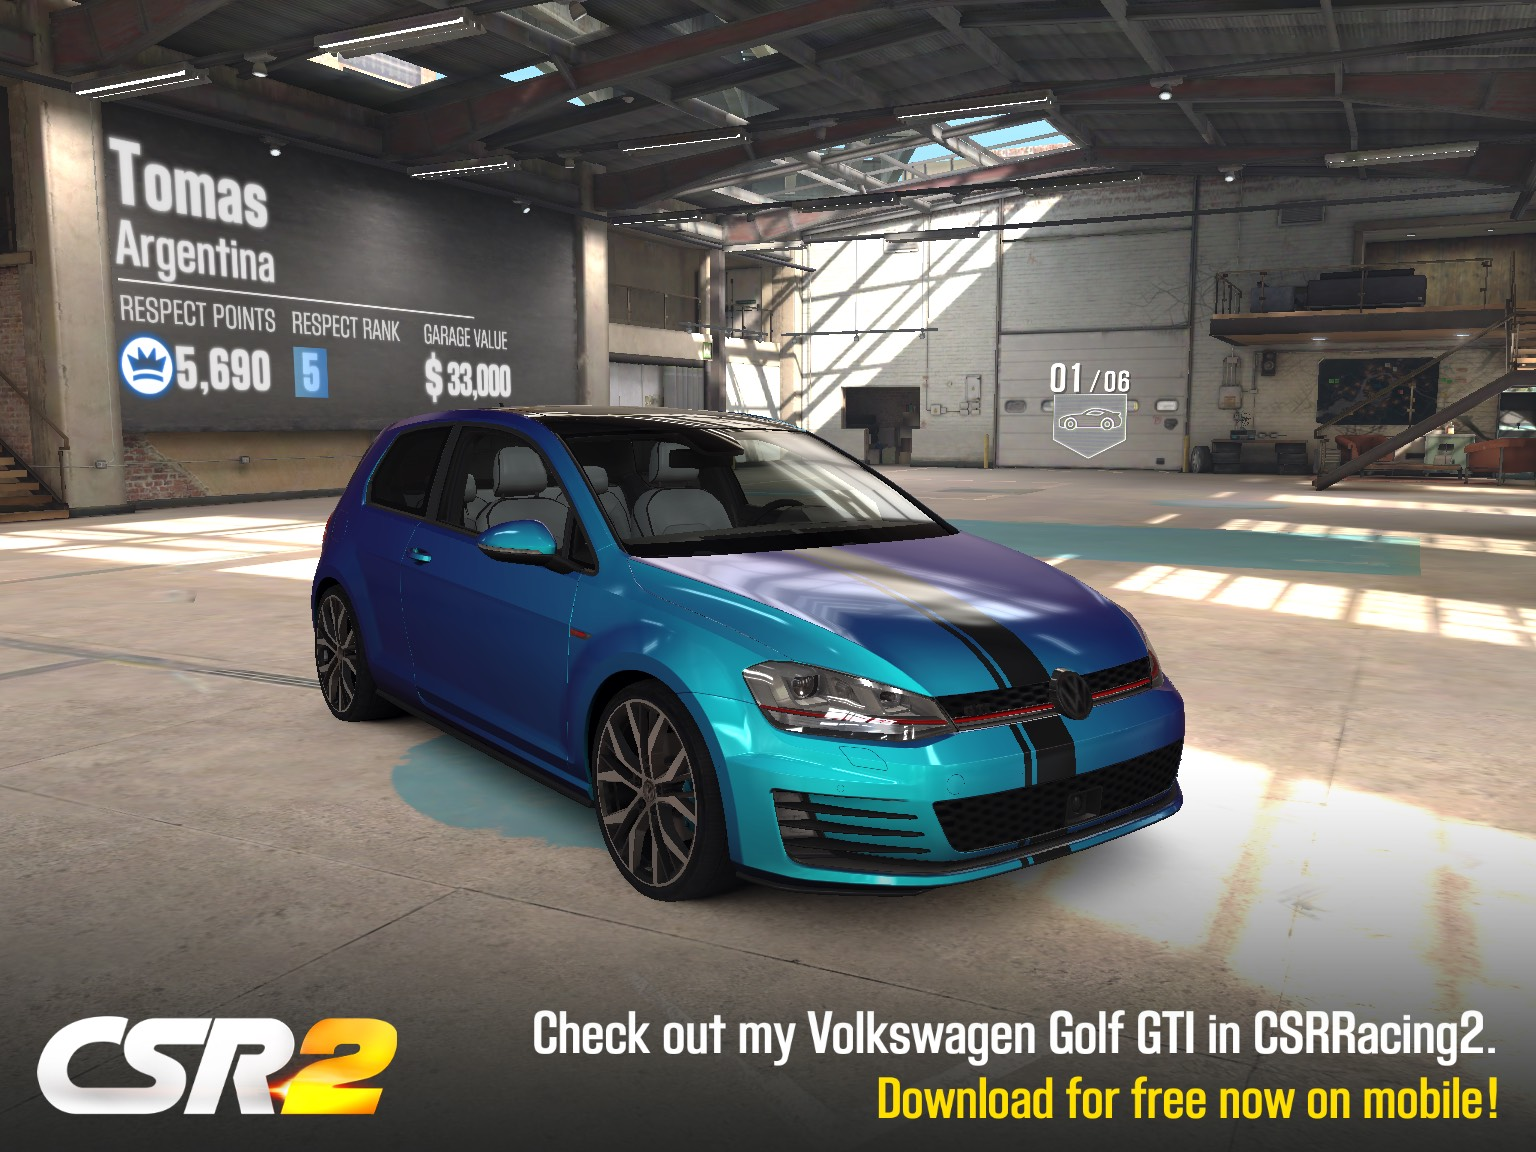 What Car Are You Starting Csr2 With As You Can See I Picked The Mk7